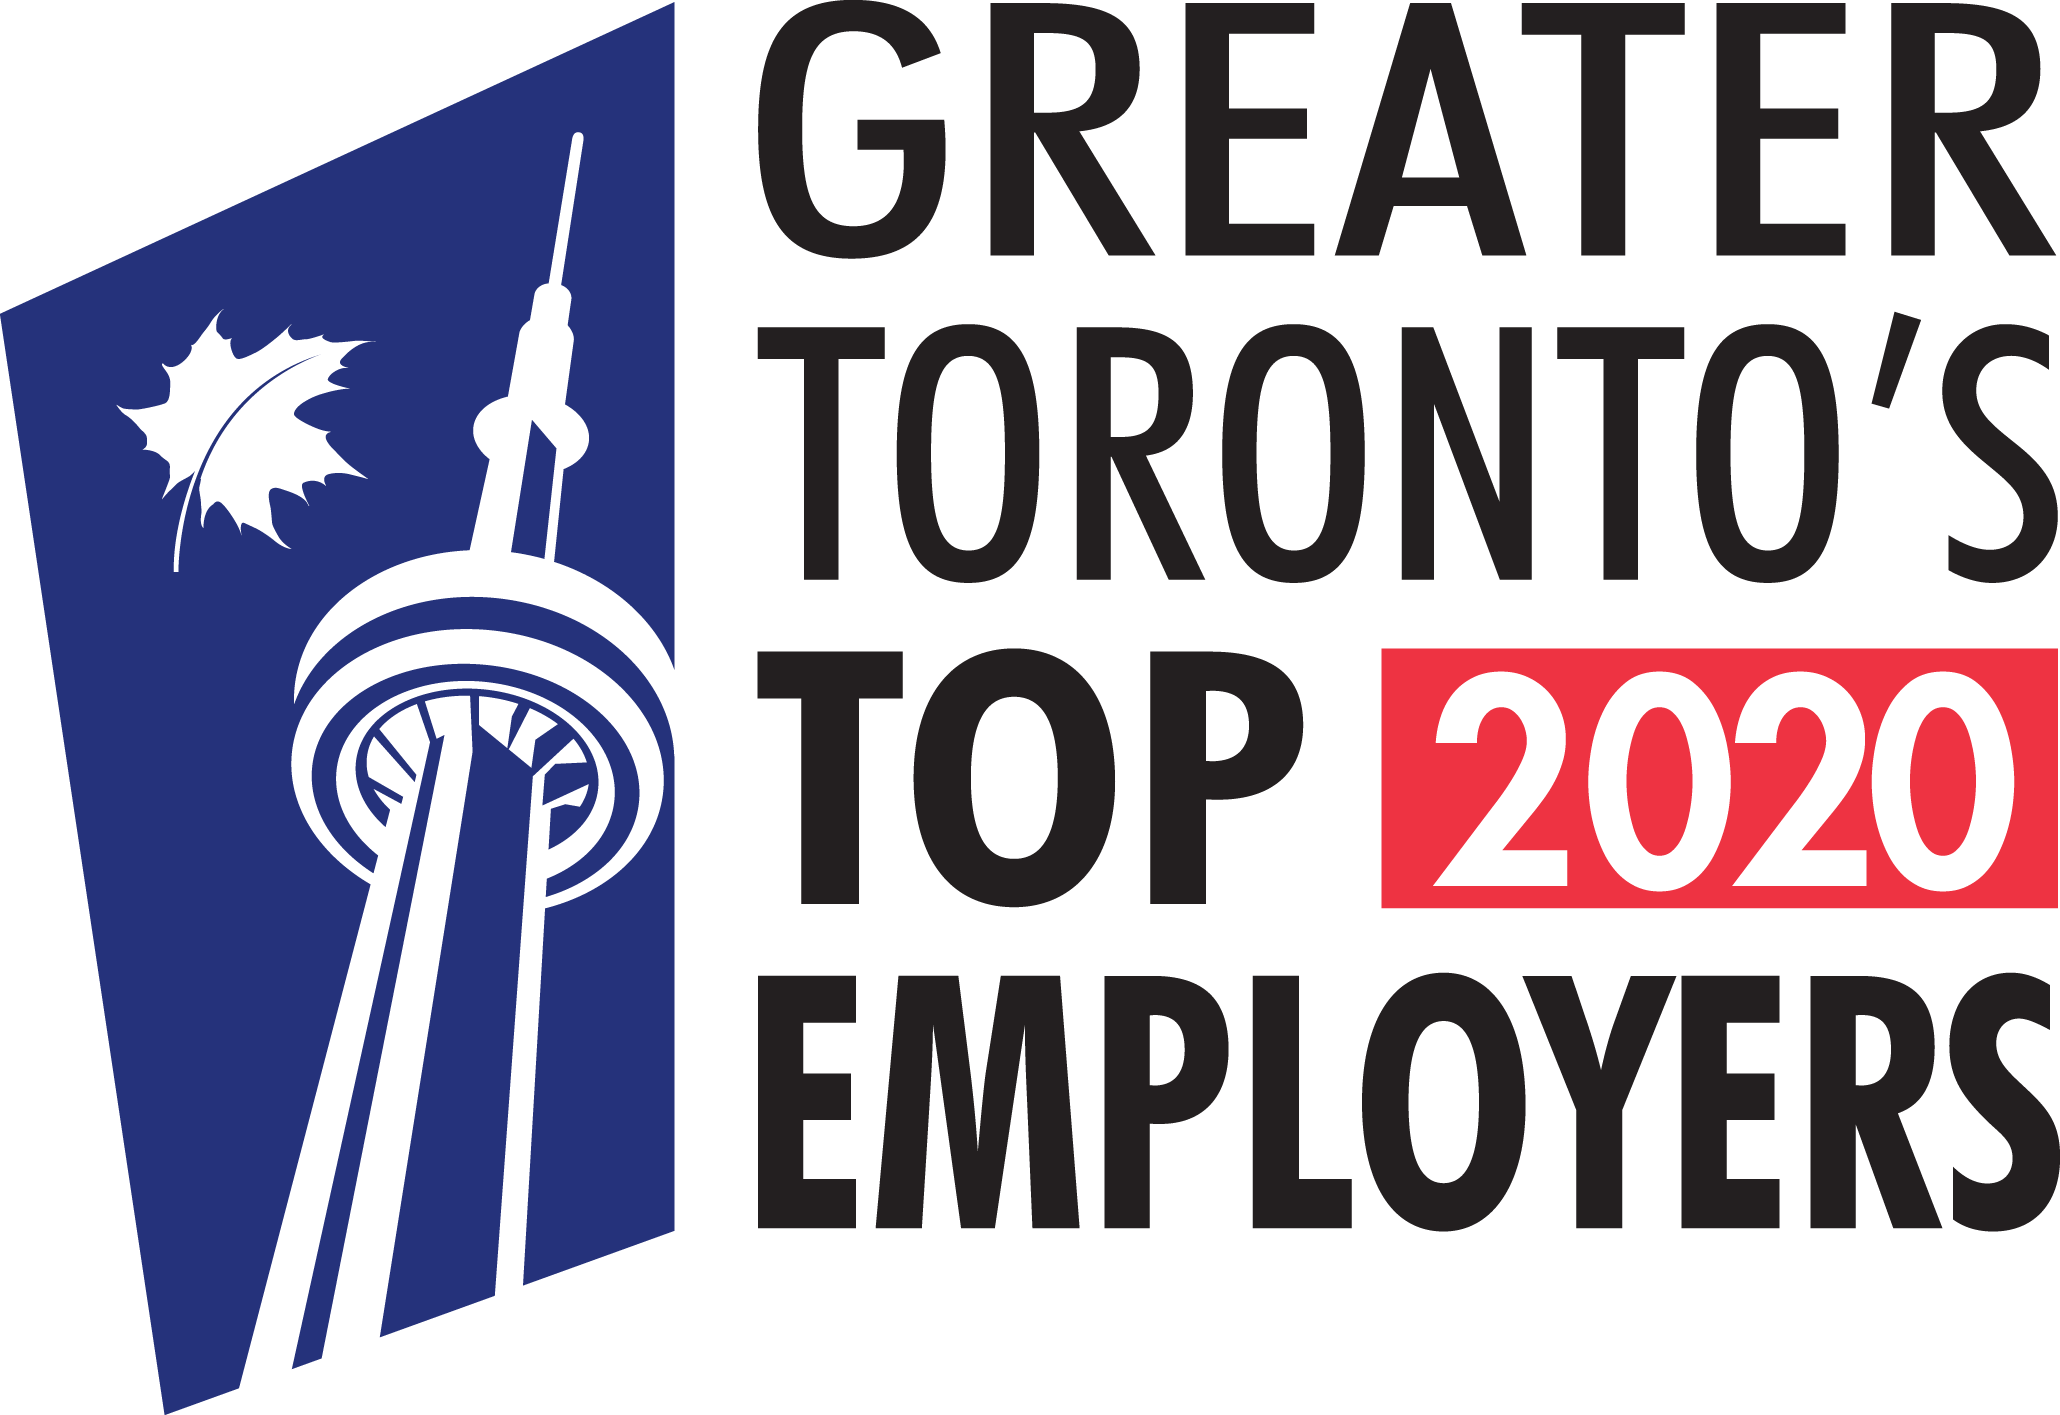 Greater Toronto's Top Employers (2018)